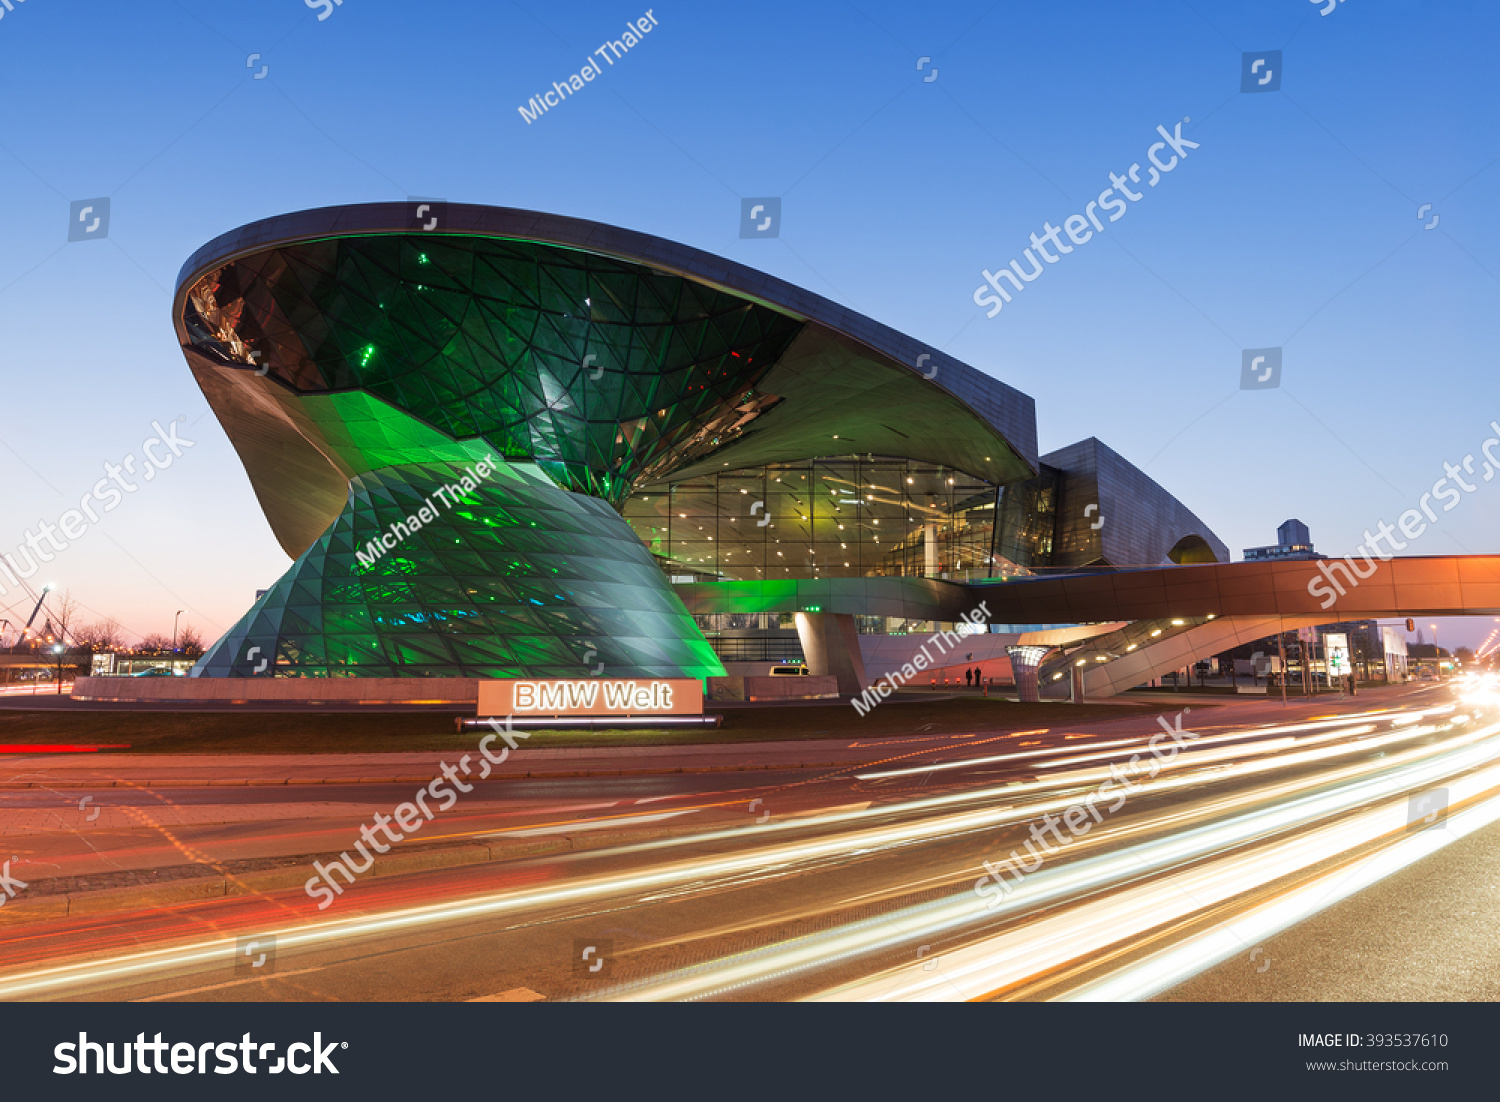 MUNICH GERMANY MARCH 17 2016 BMW World BMW Welt a multi-functional customer experience and exhibition facility of the BMW AG at St Patricks Day